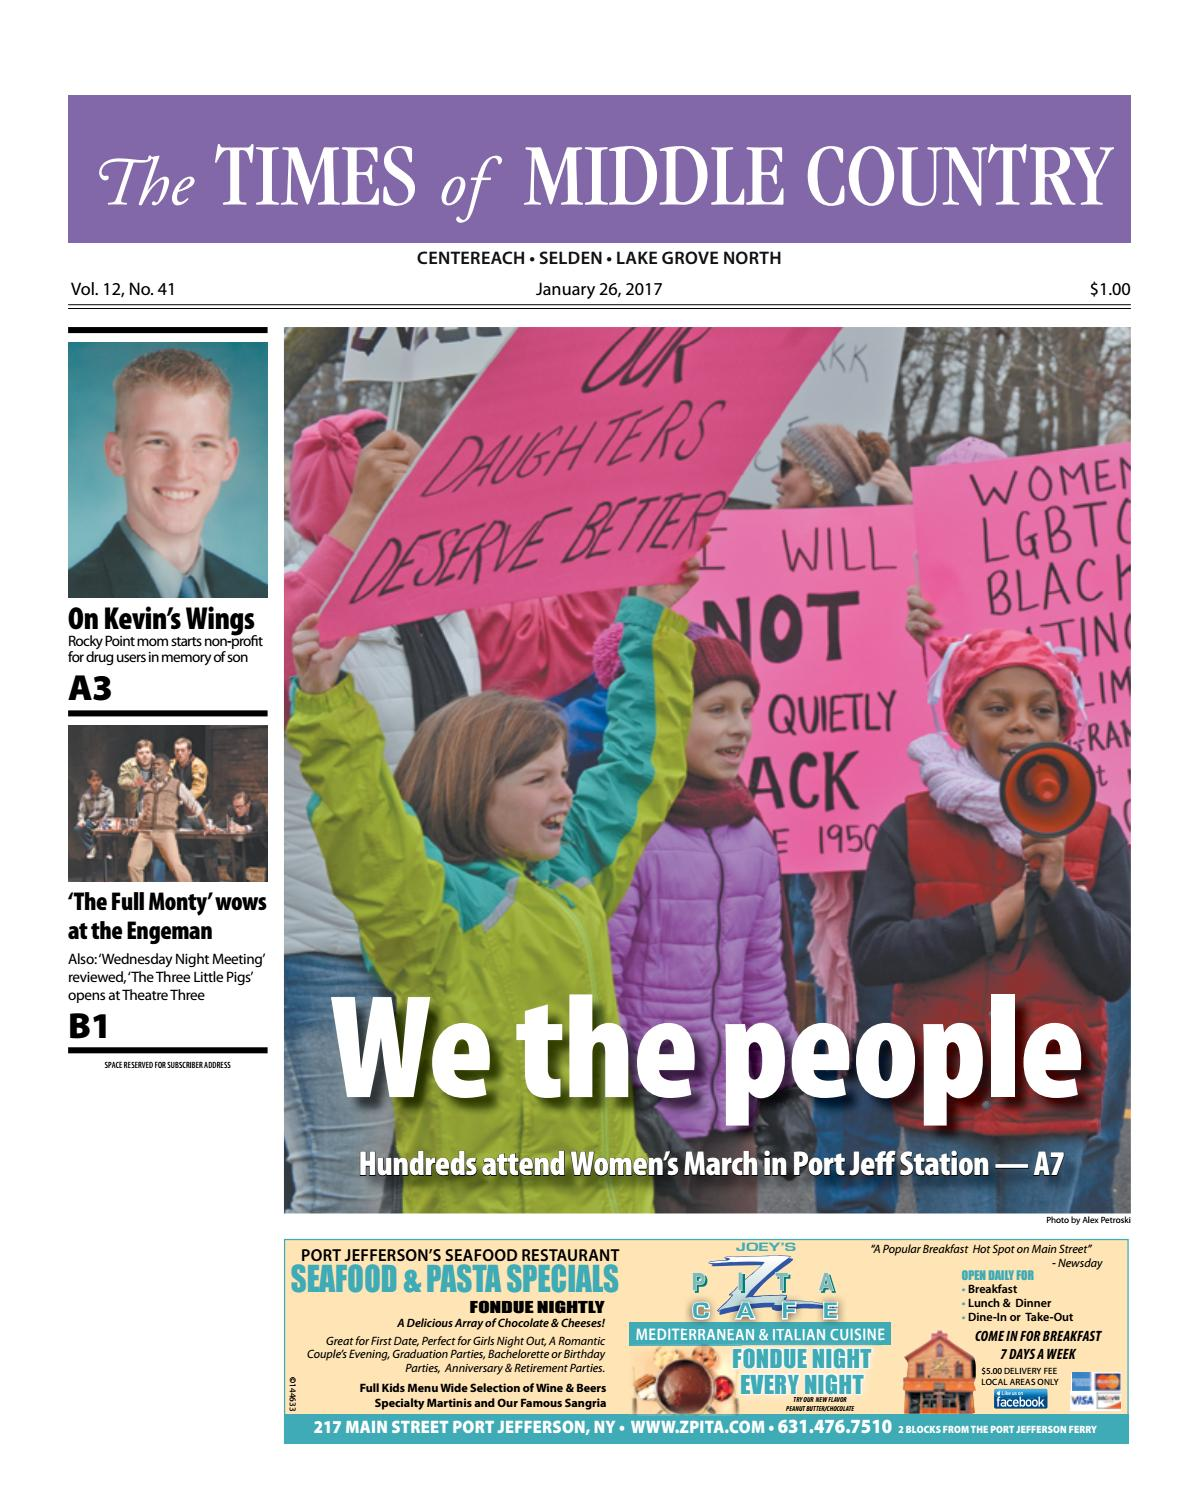 The Times of Middle Country - January 26, 2016 by TBR News Media - issuu